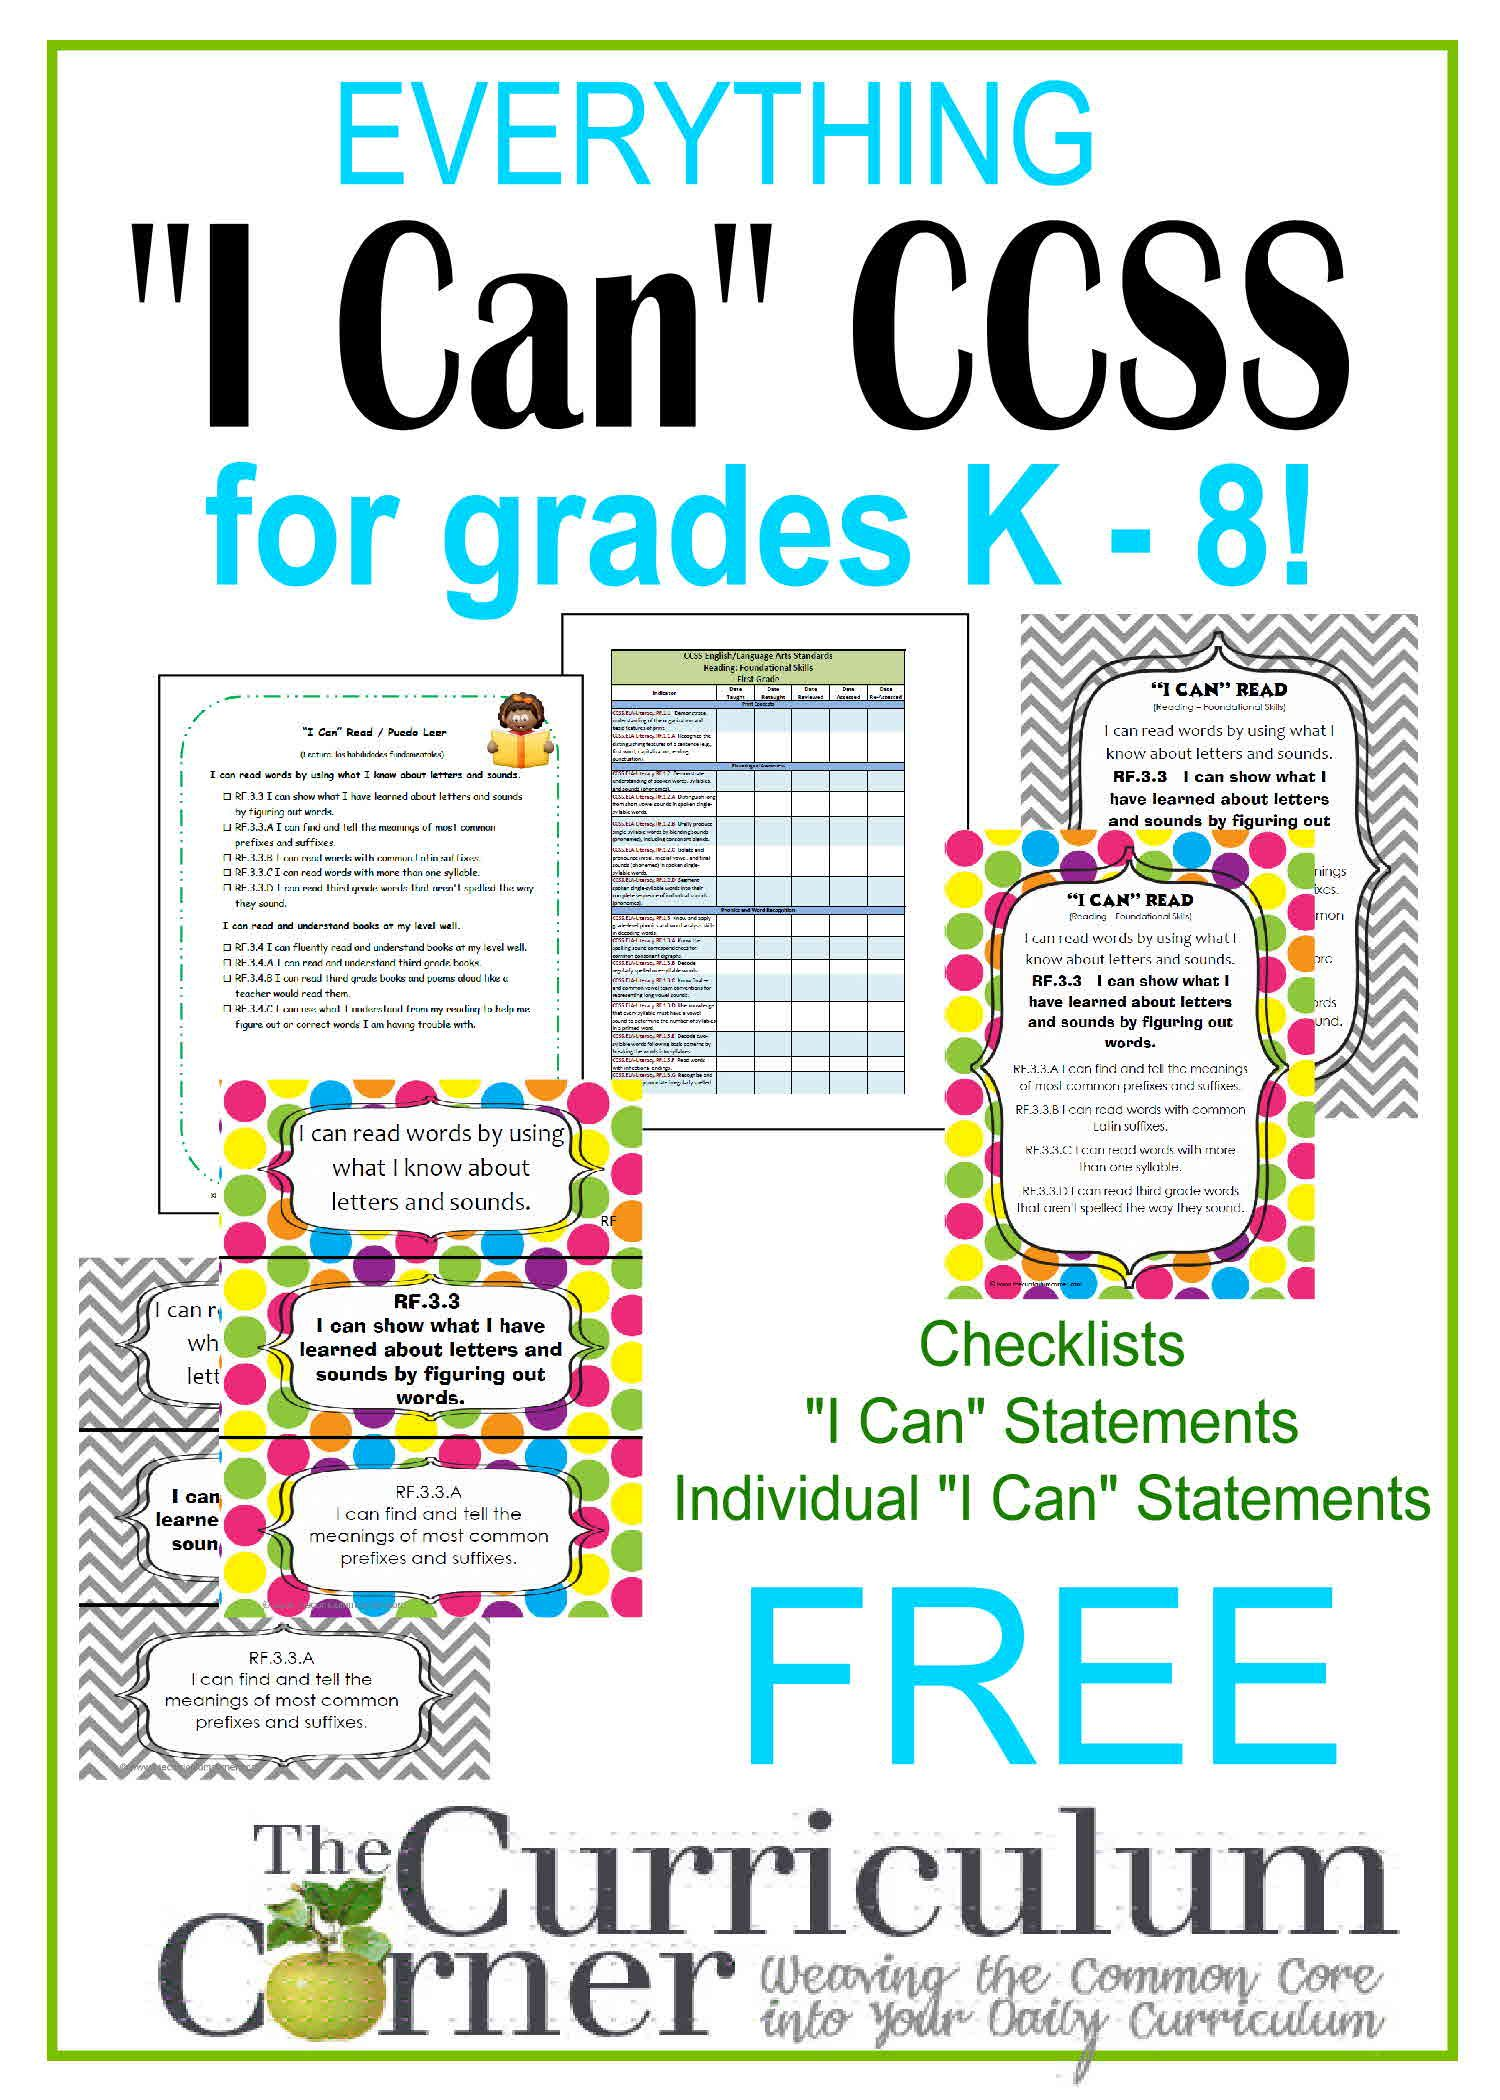 Everything Ccss I Can For K